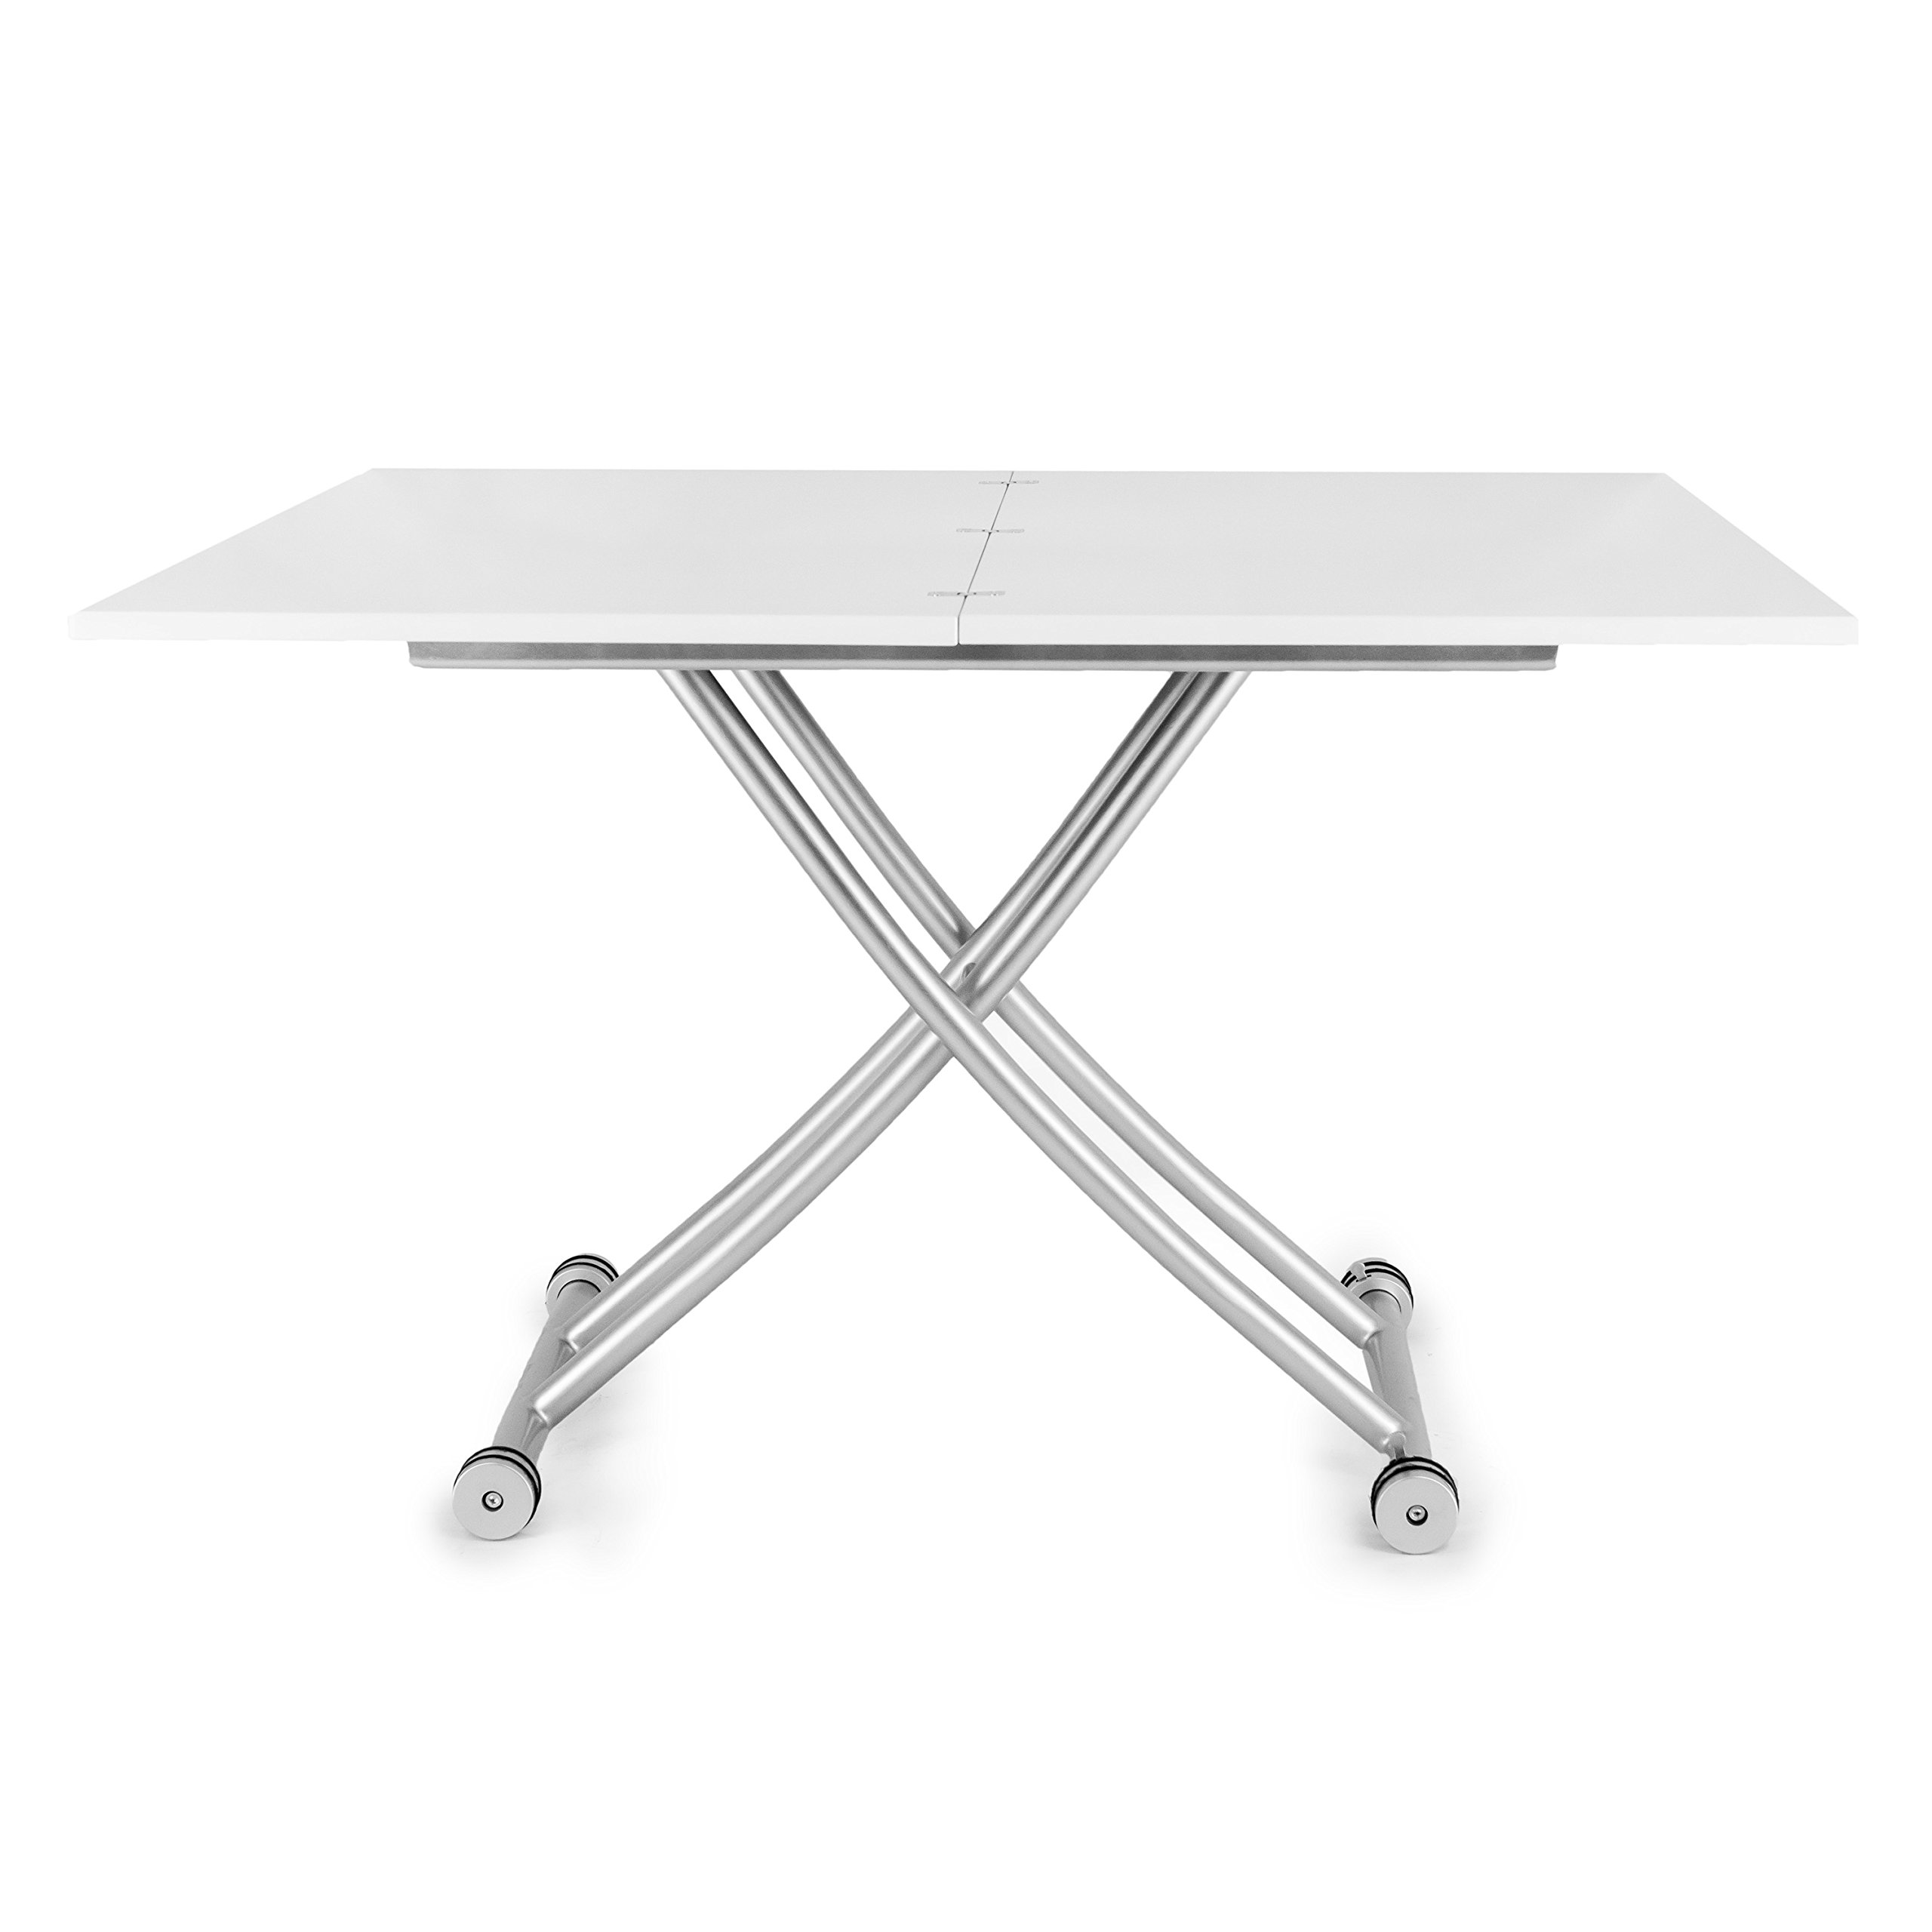 Corner Housewares Modern Multi-Purpose Dining Room Wheeled Transforming Adjustable Expanding X Lift Coffee and Dining Table, White Finish by SpaceMaster